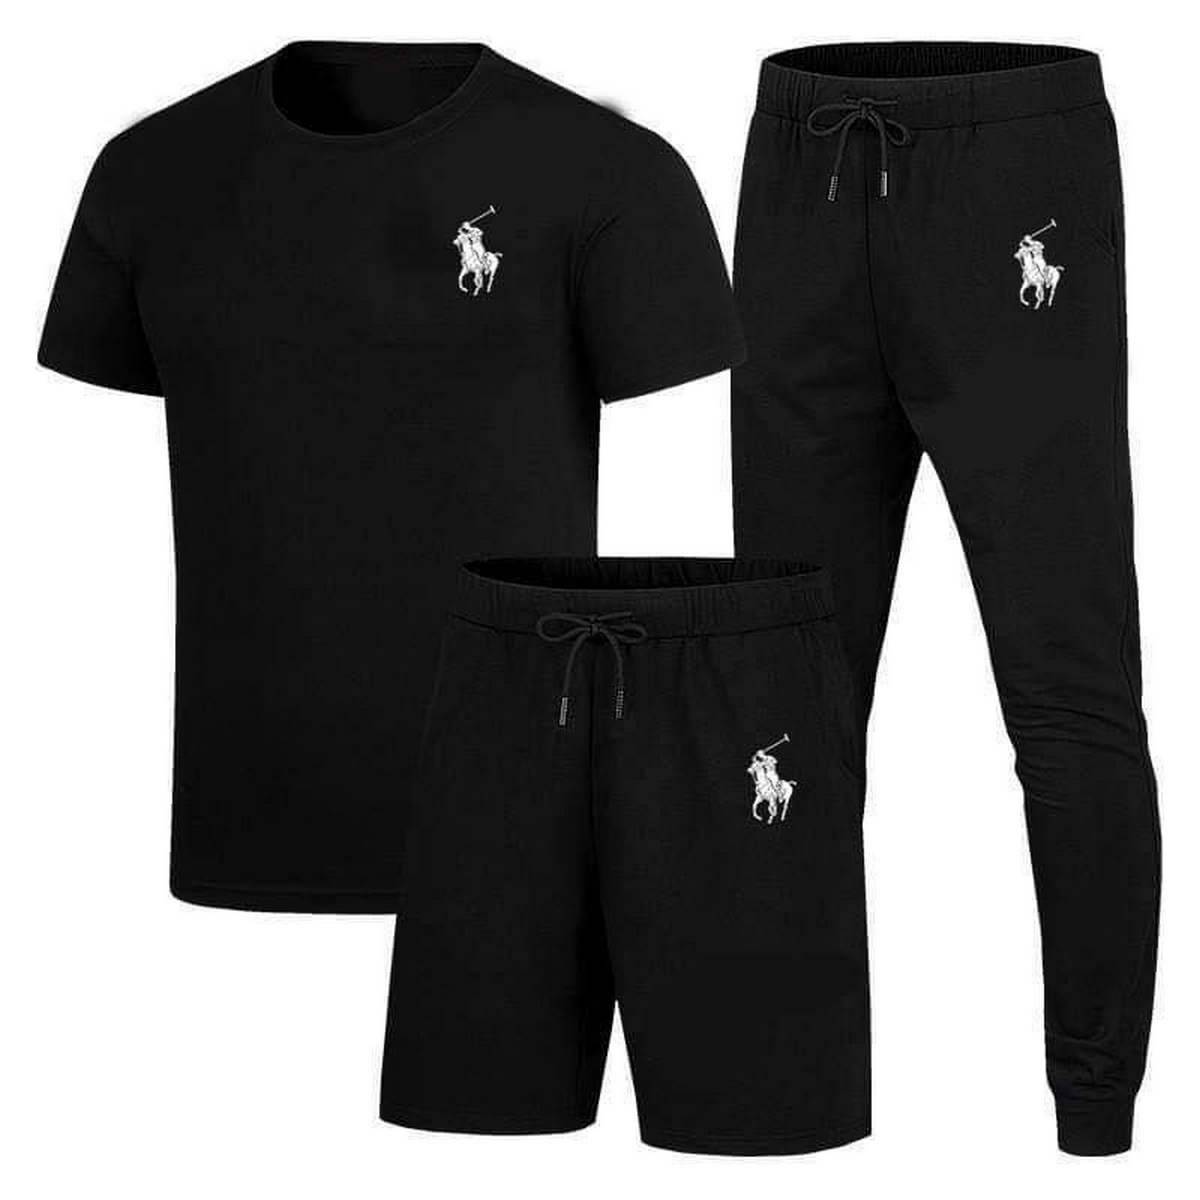 Pack Of 3 Summer Track suit & Night suit (T-shirt + Trouser + Short)